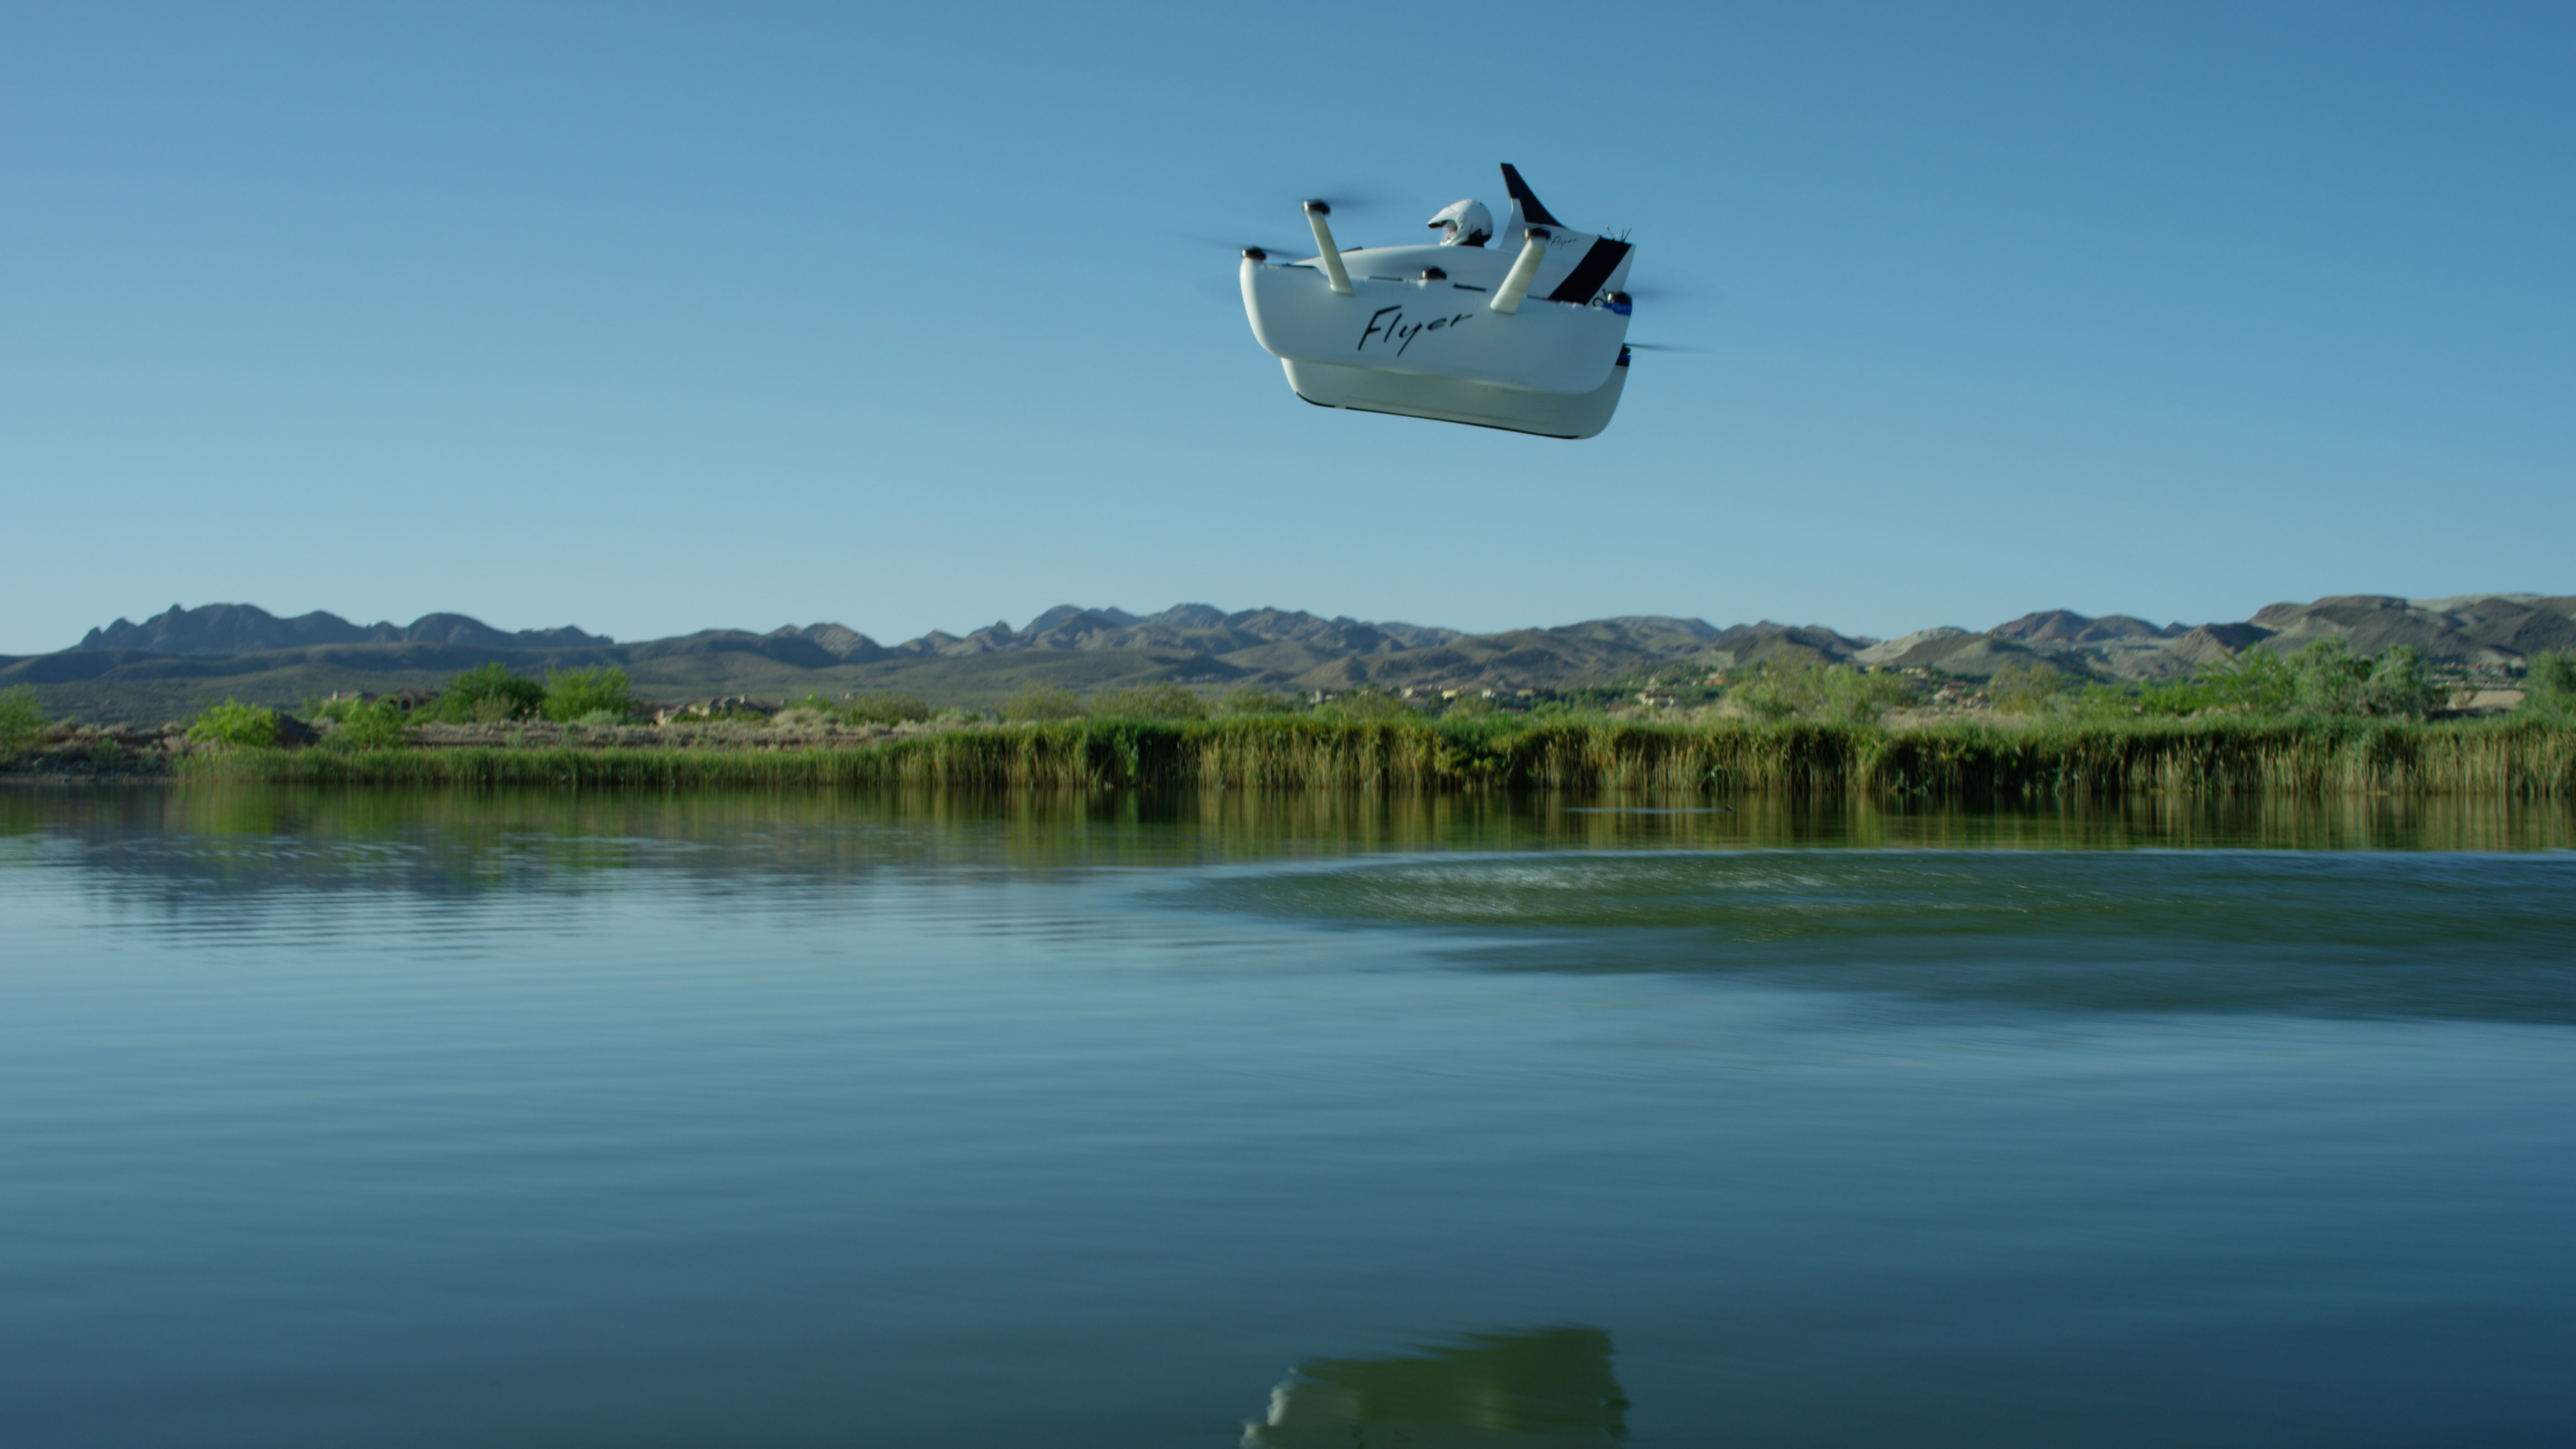 This Is Larry Page s Latest Flying Car – Bloomberg